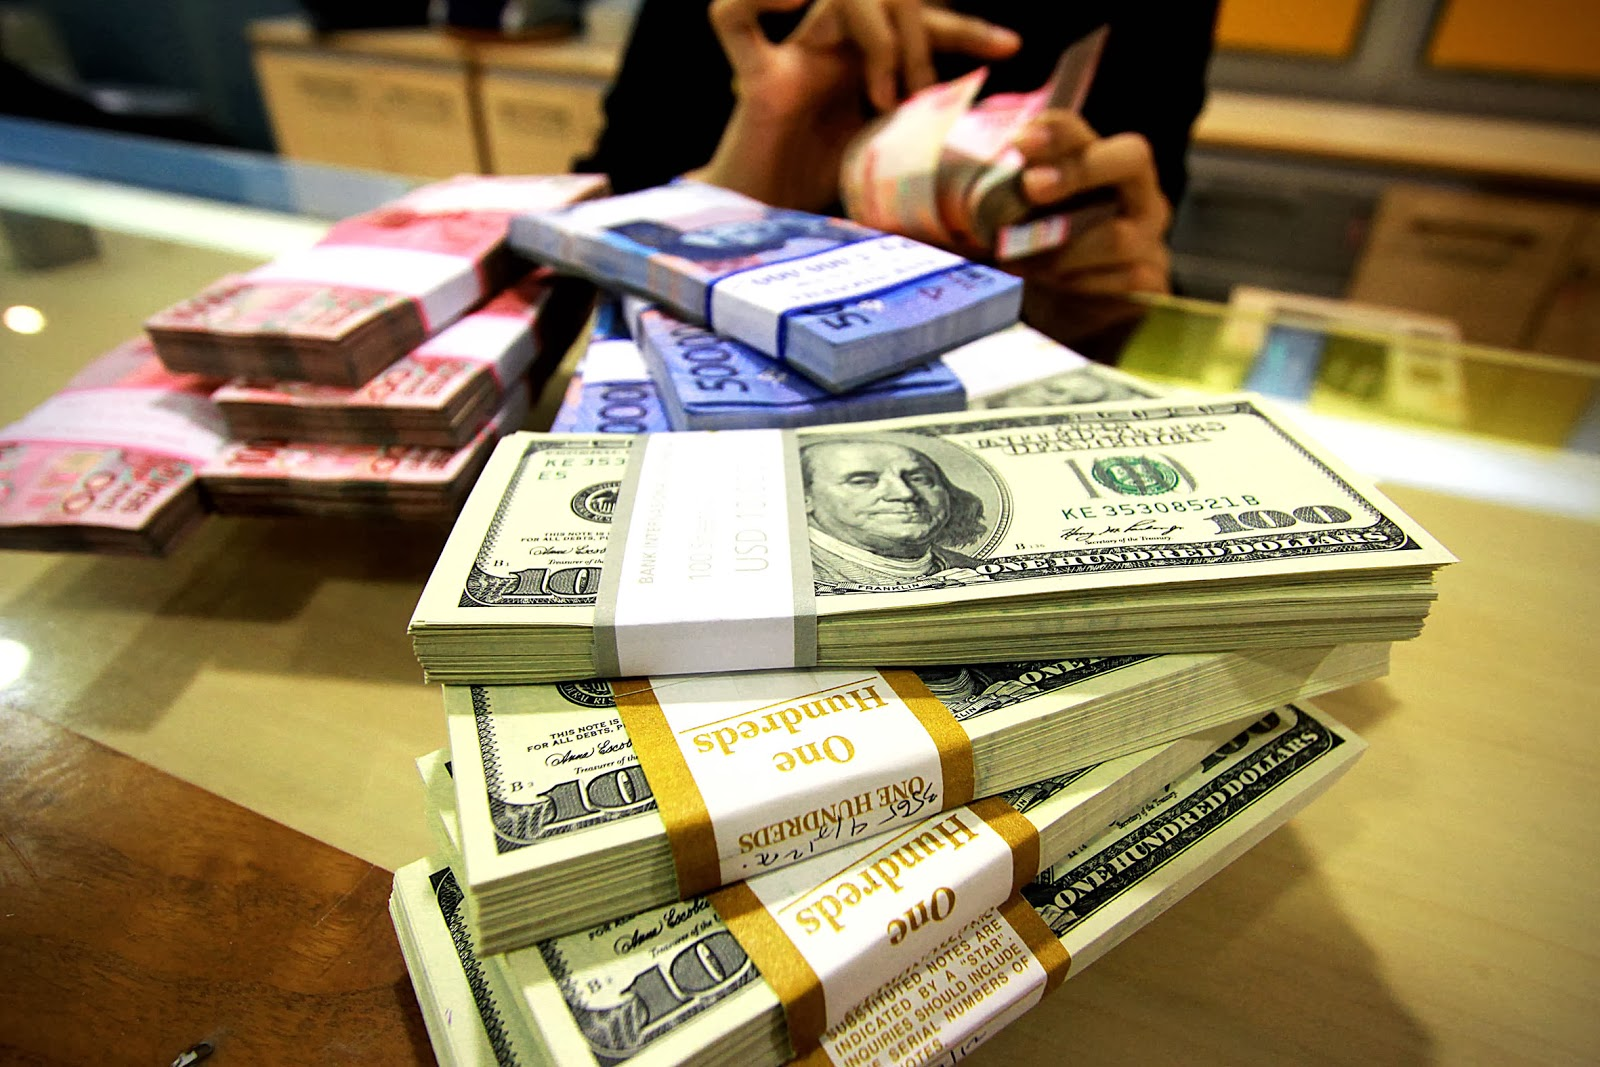 The Indonesian Rupiah Is Now Roaching Rp 14 000 Per Us Dollar Level After It Depreciated On Monday By 0 59 Percent To 13 975